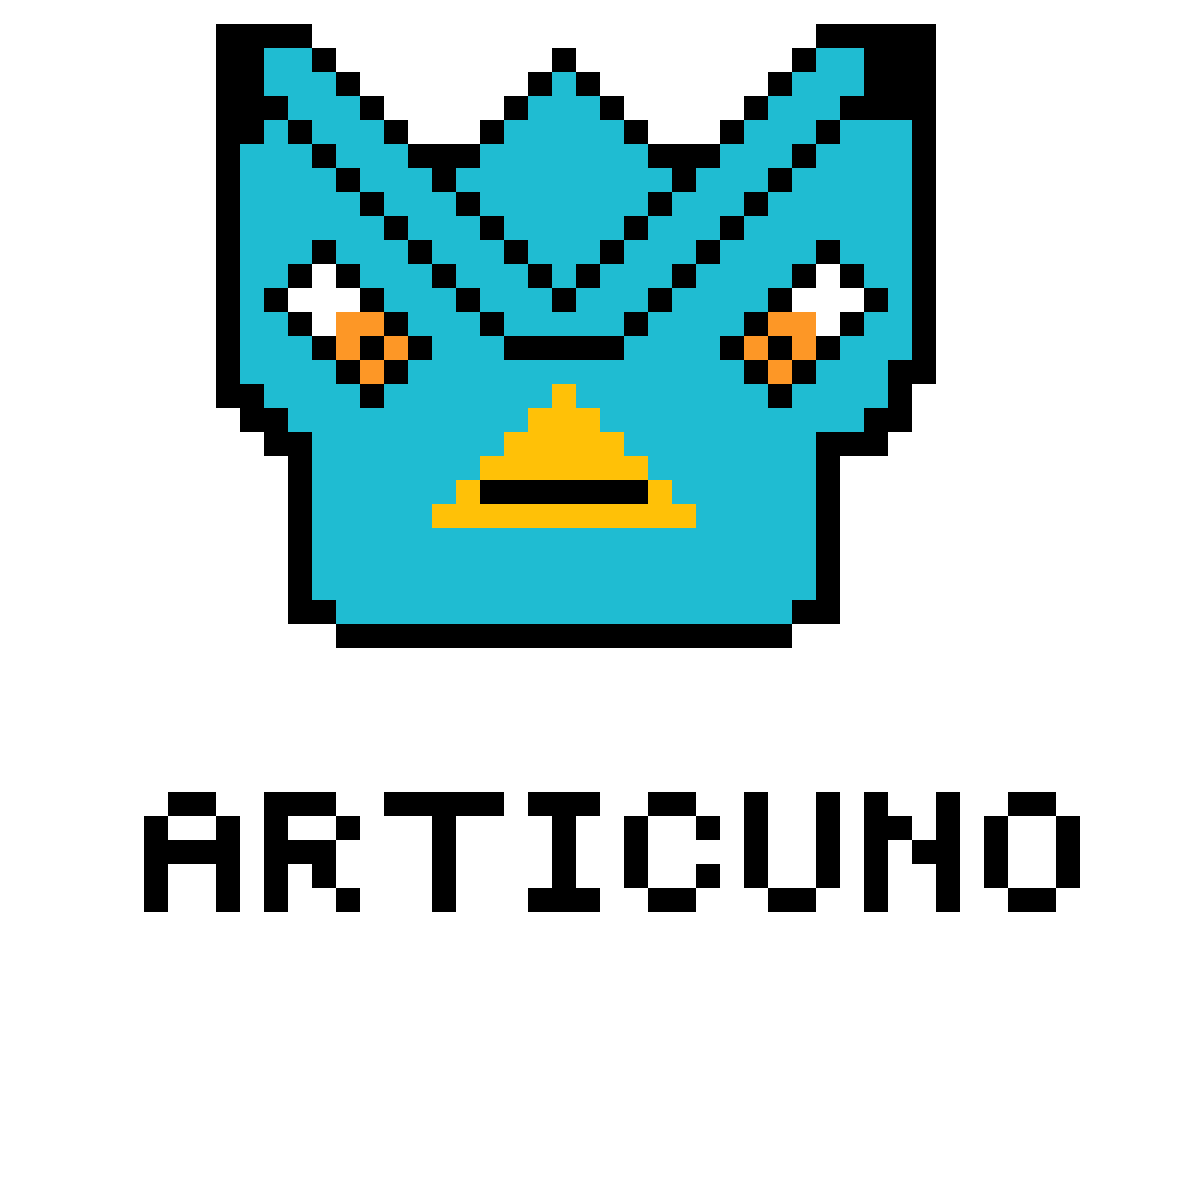 Articuno's face by PixelatorMan